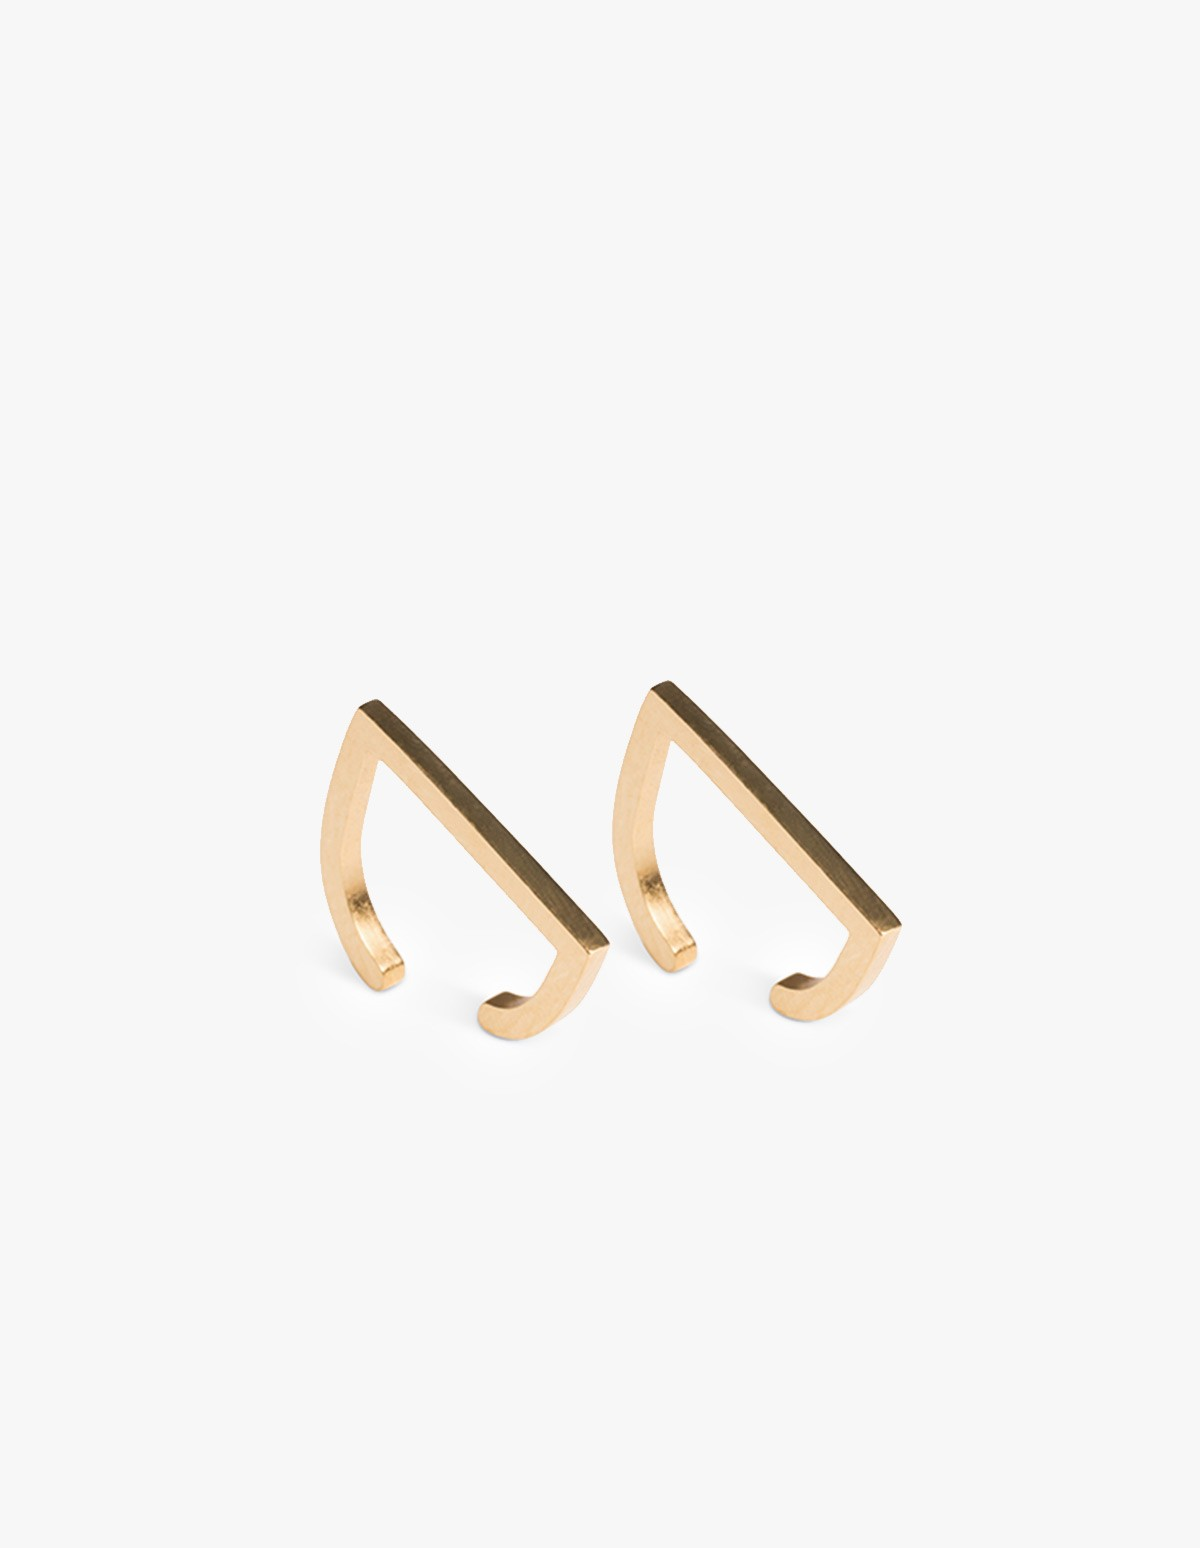 The Boyscouts Earring Rivet Cuff Gold - Pair  in Gold